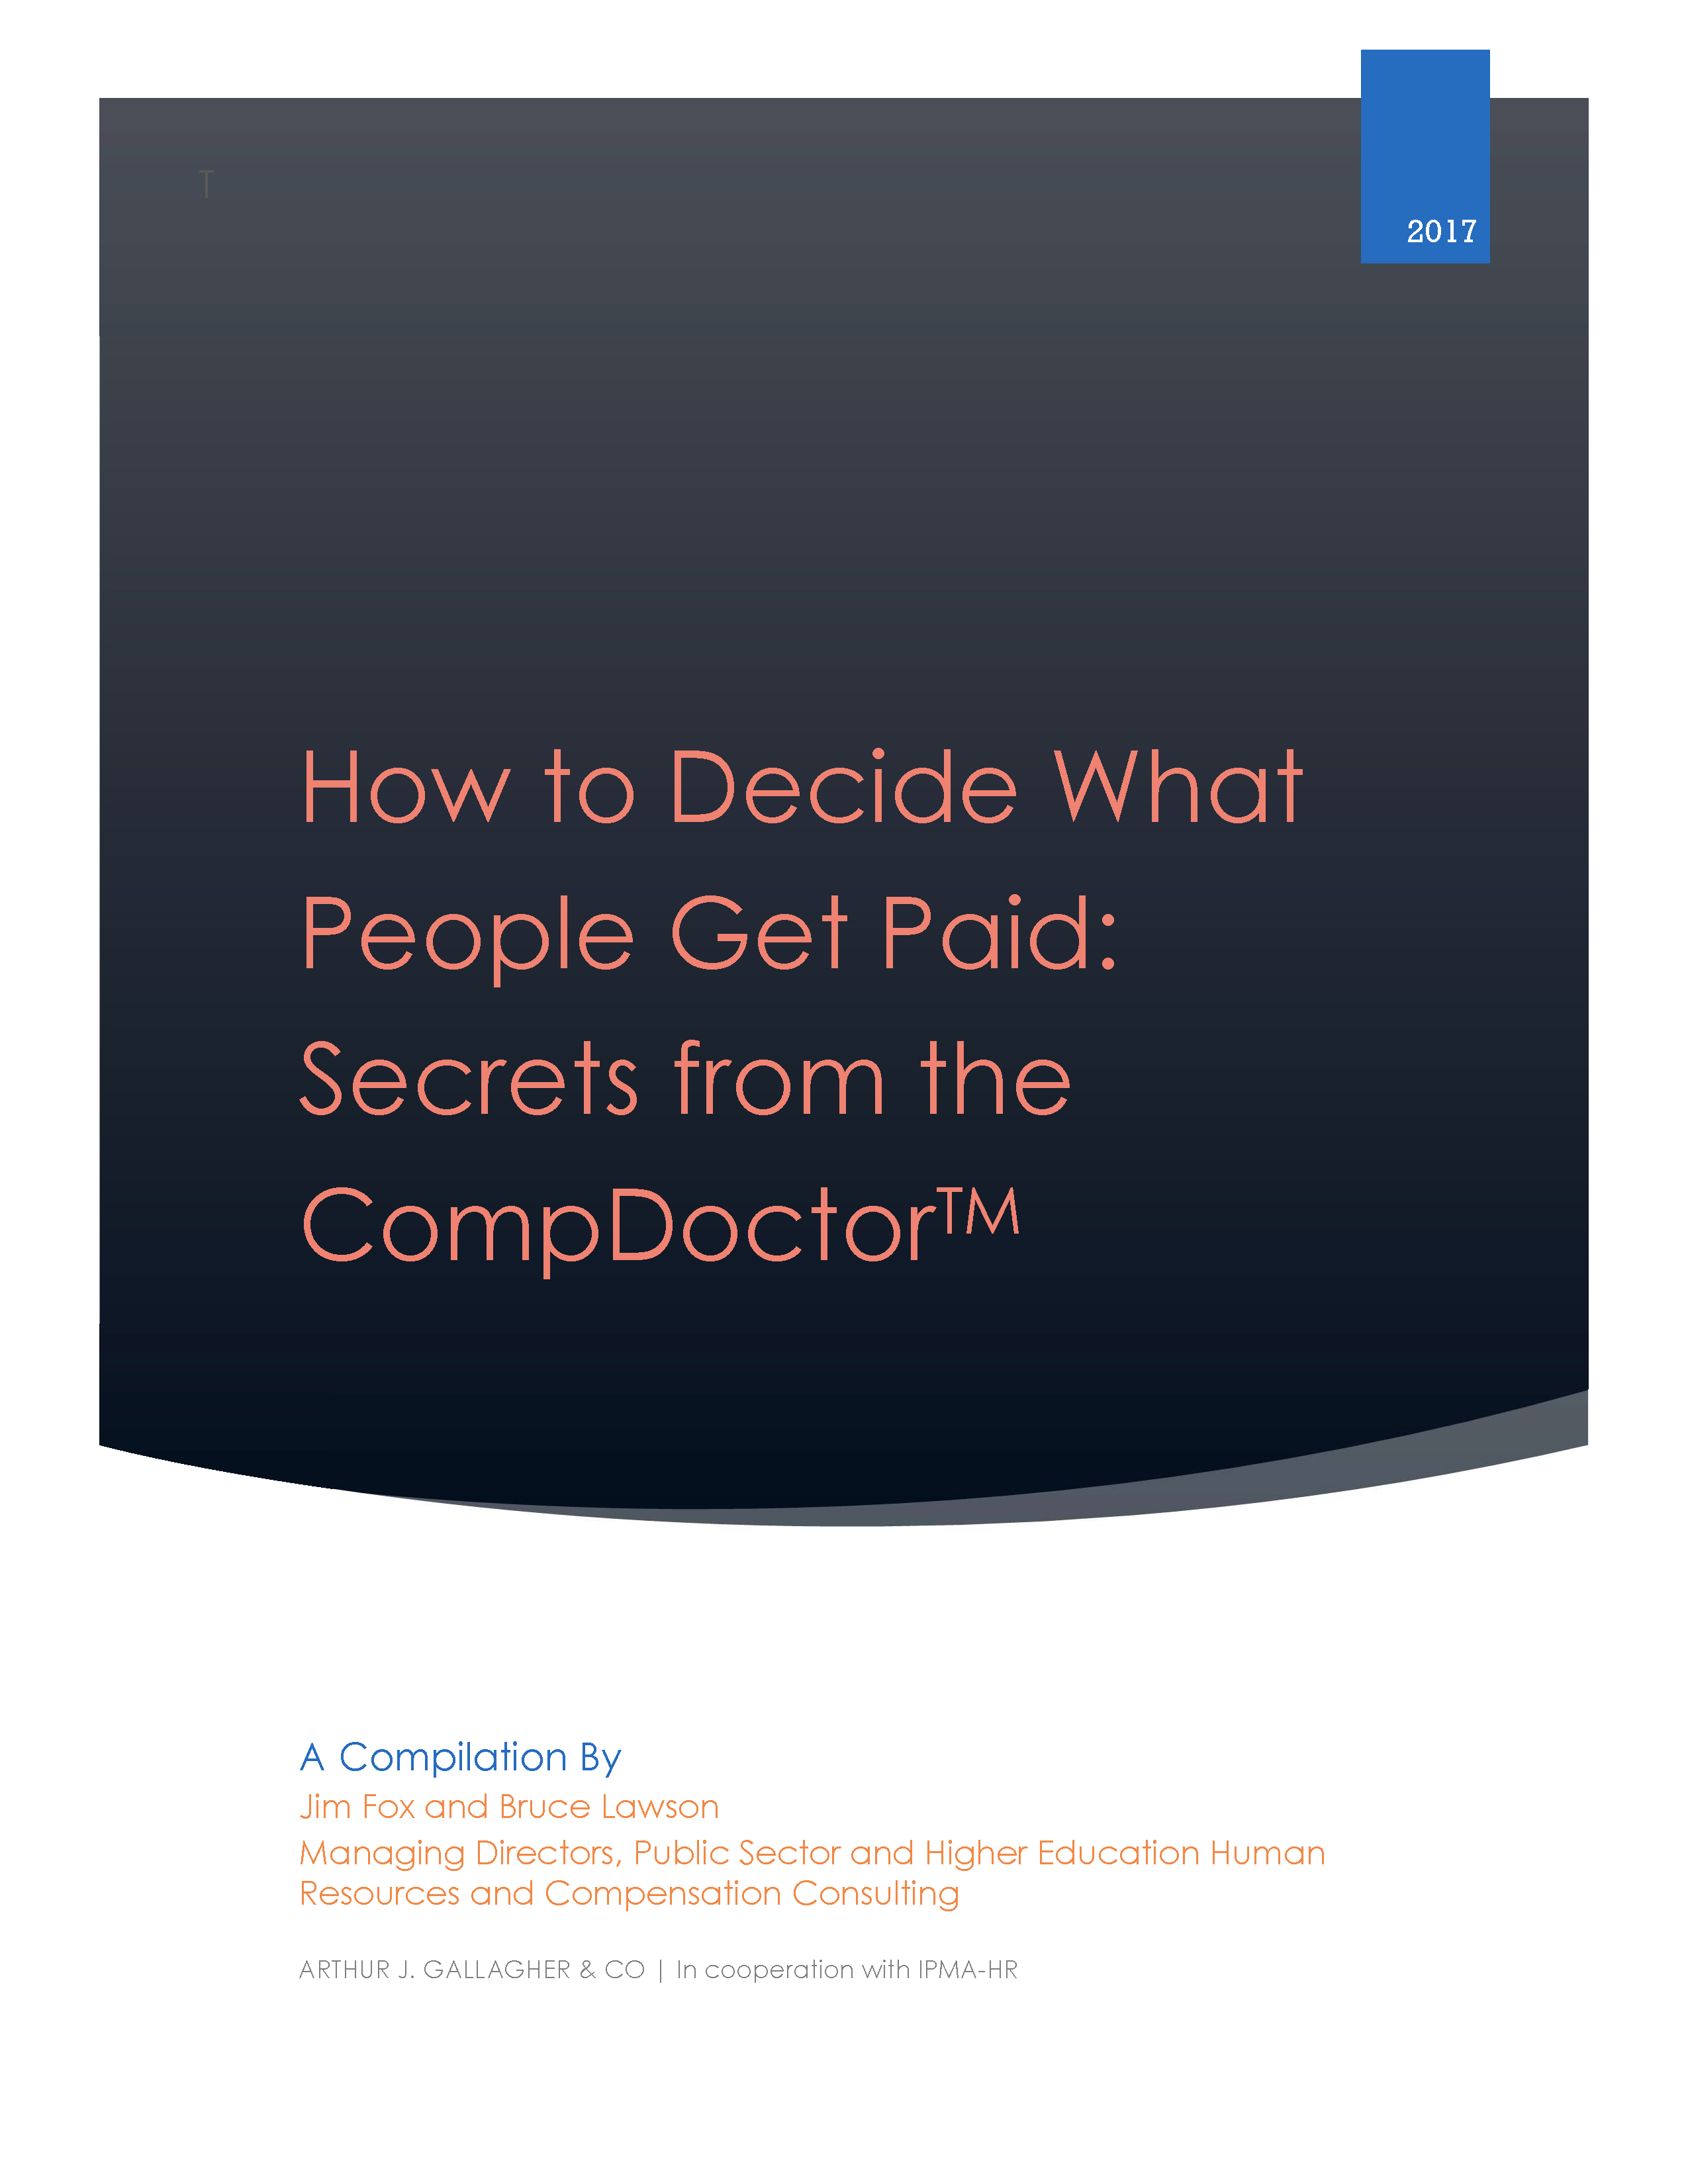 How to Decide What People Get Paid: Secrets from the CompDoctor™